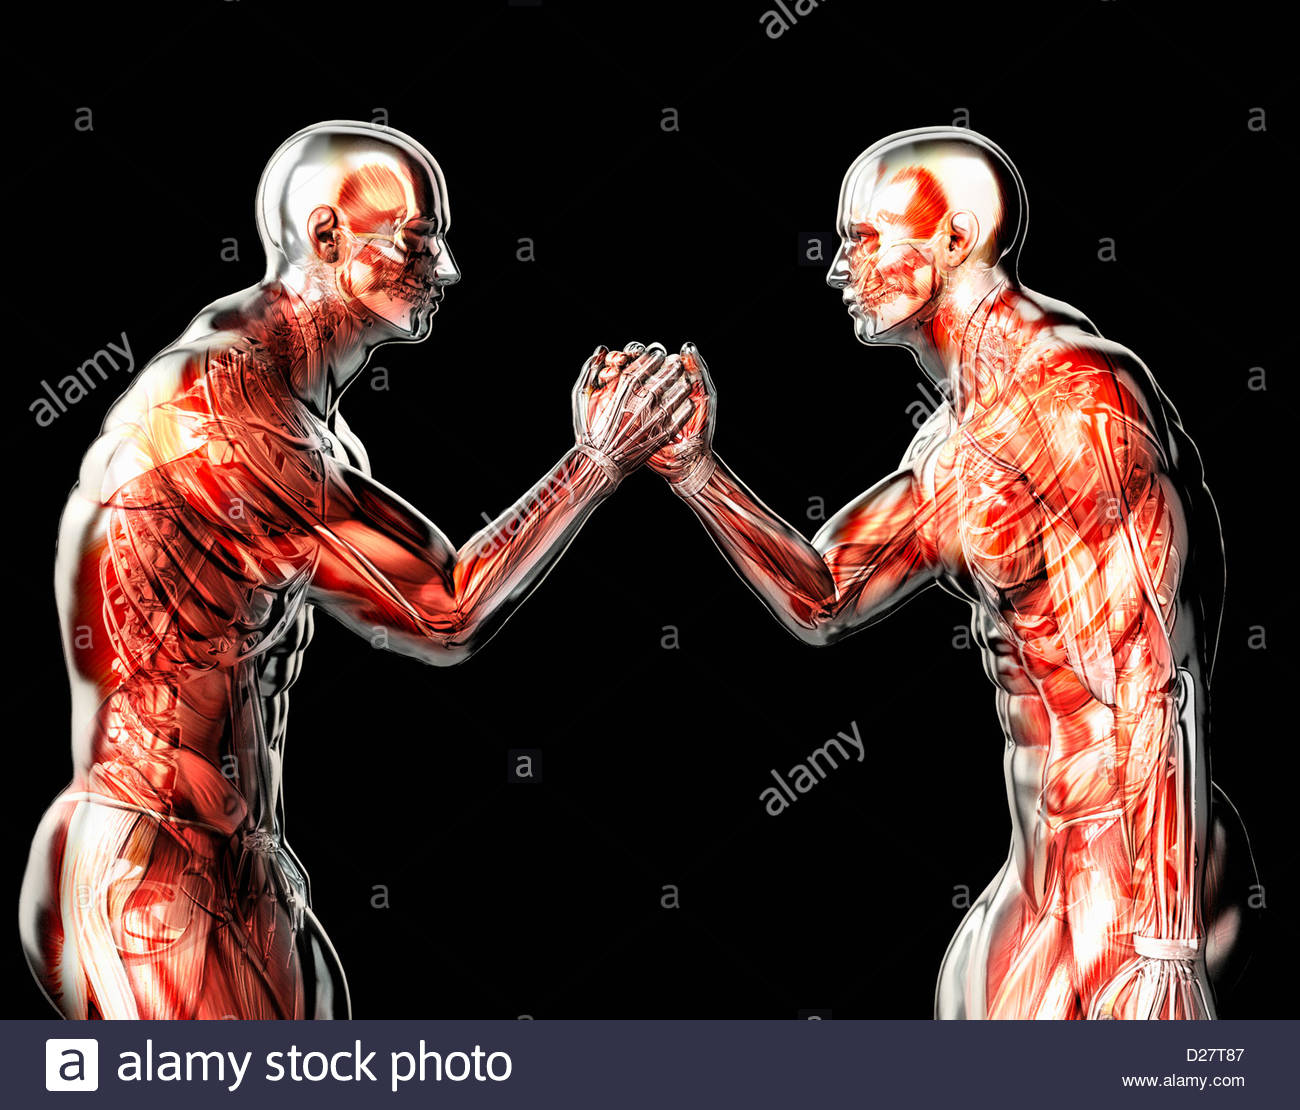 Male anatomical models arm wrestling on black background Stock Photo